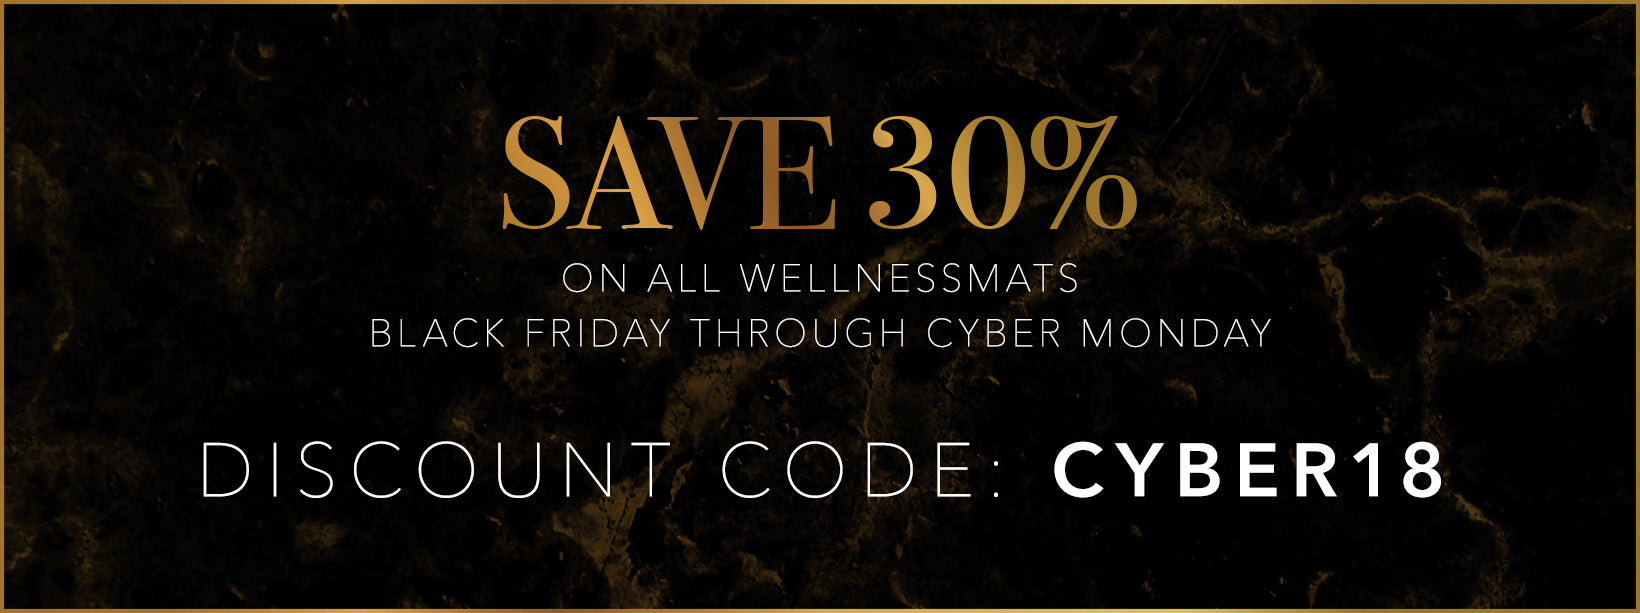 Save 30% on all WellnessMats Black Friday - Cyber Monday w/code CYBER18